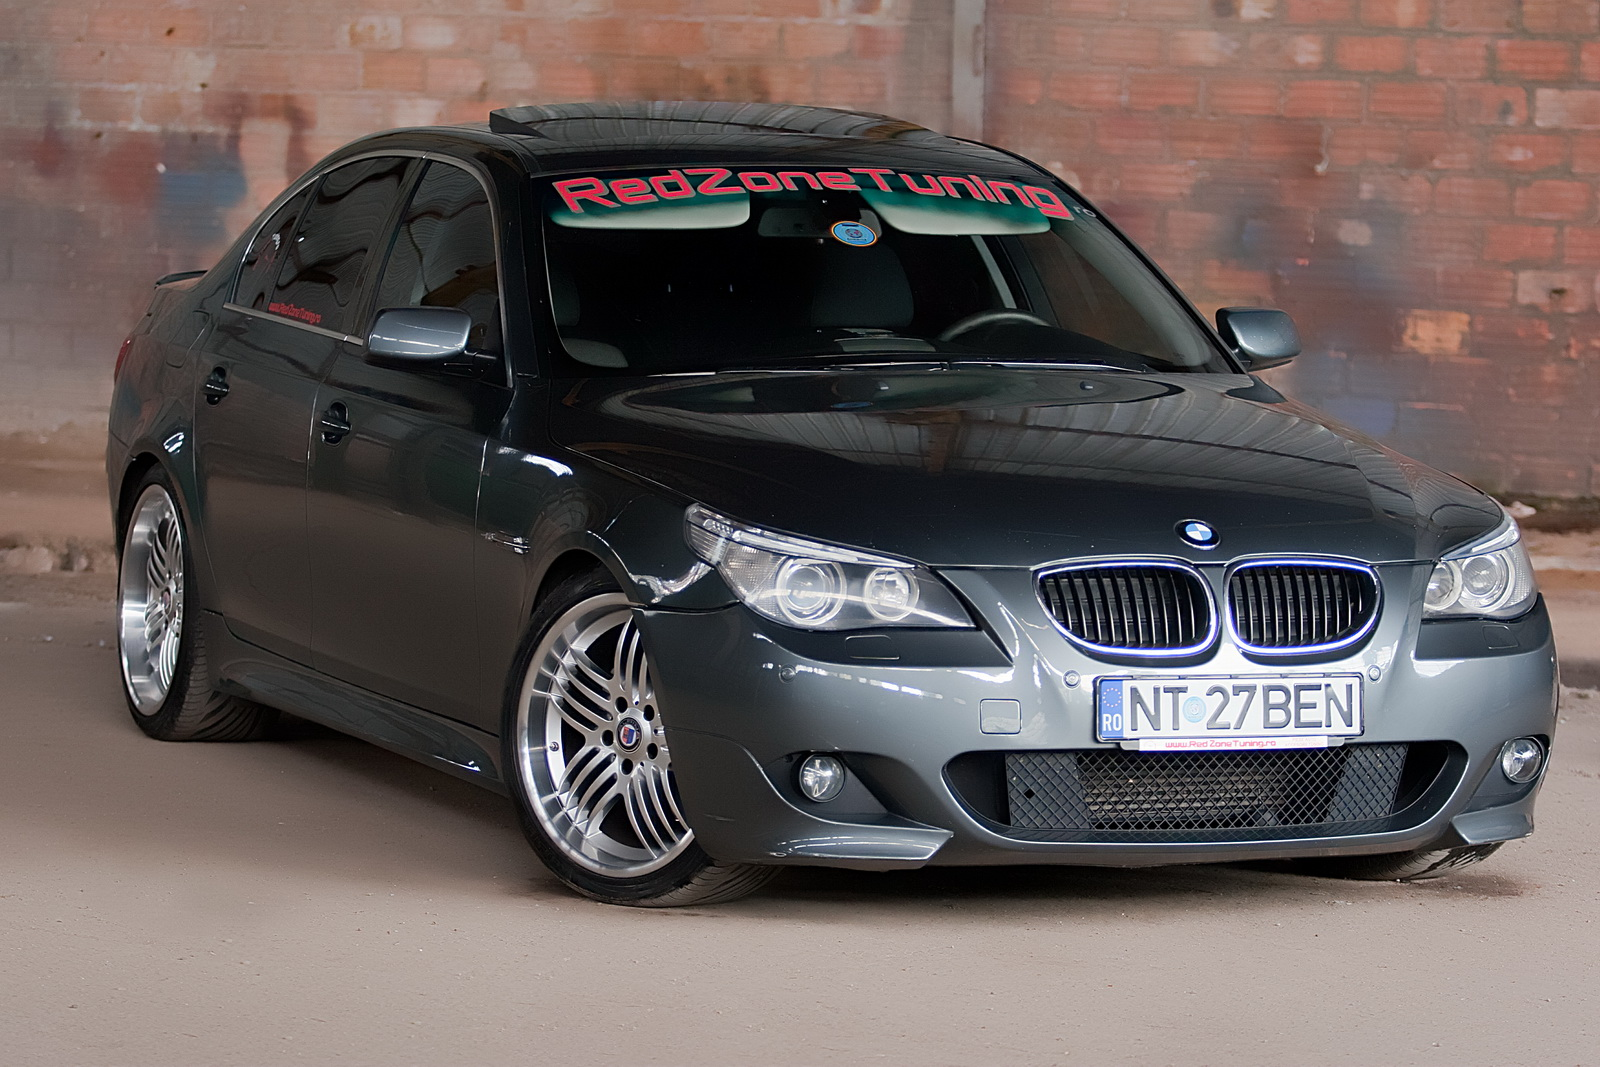 arta de a face tuning bmw e60 clean tuning. Black Bedroom Furniture Sets. Home Design Ideas